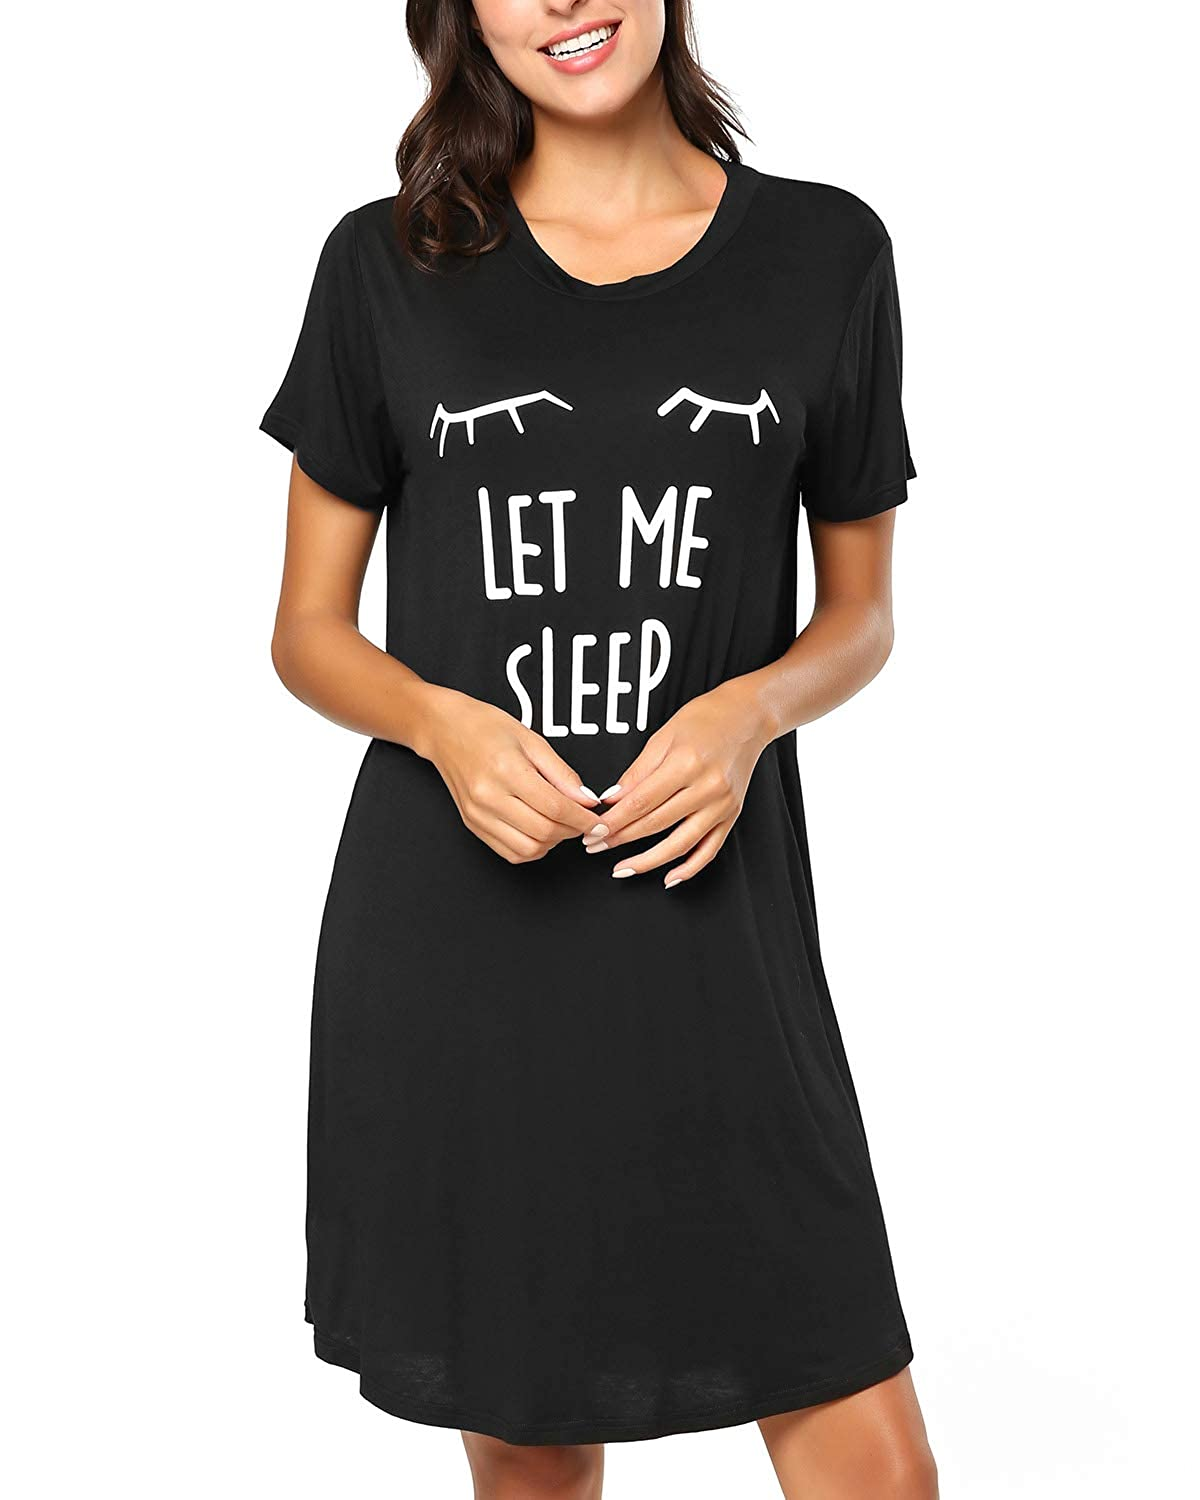 b52d7c372f KENANCY Women's Short Sleeve Nightgown Cotton Sleep Shirt Printed Scoopneck Sleep  Tee Nightshirt at Amazon Women's Clothing store: